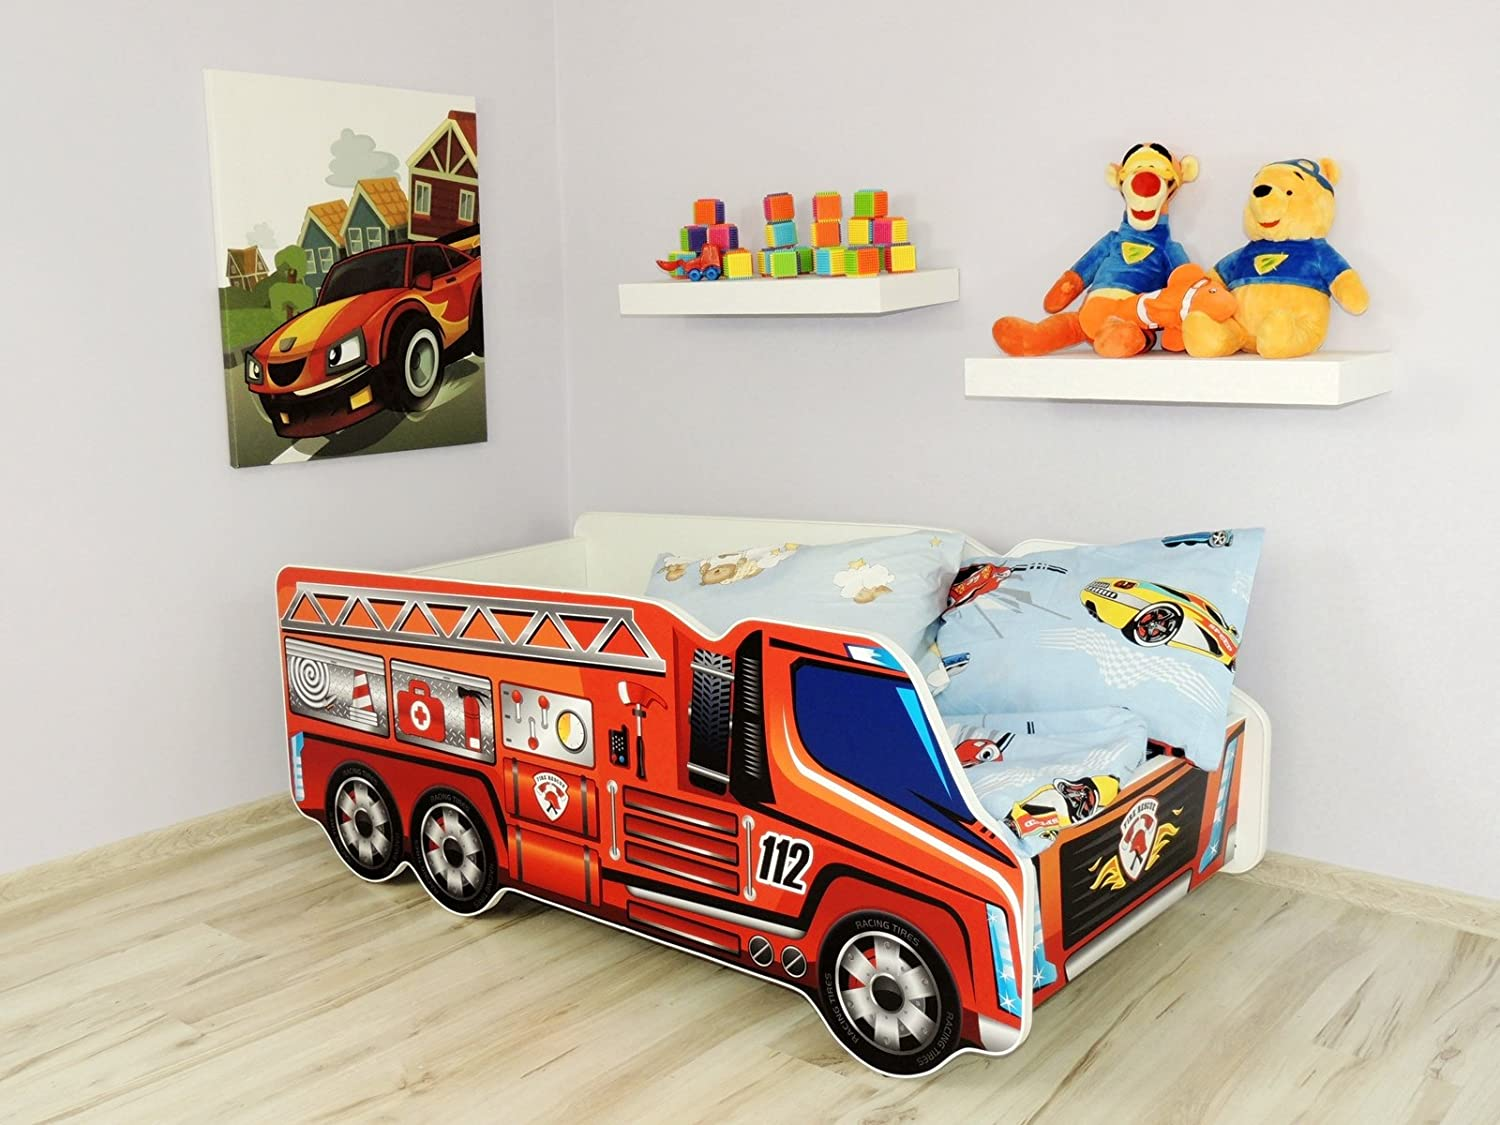 moderne lit duenfant bb toddler avec matelas voiture with lit en forme de carrosse. Black Bedroom Furniture Sets. Home Design Ideas